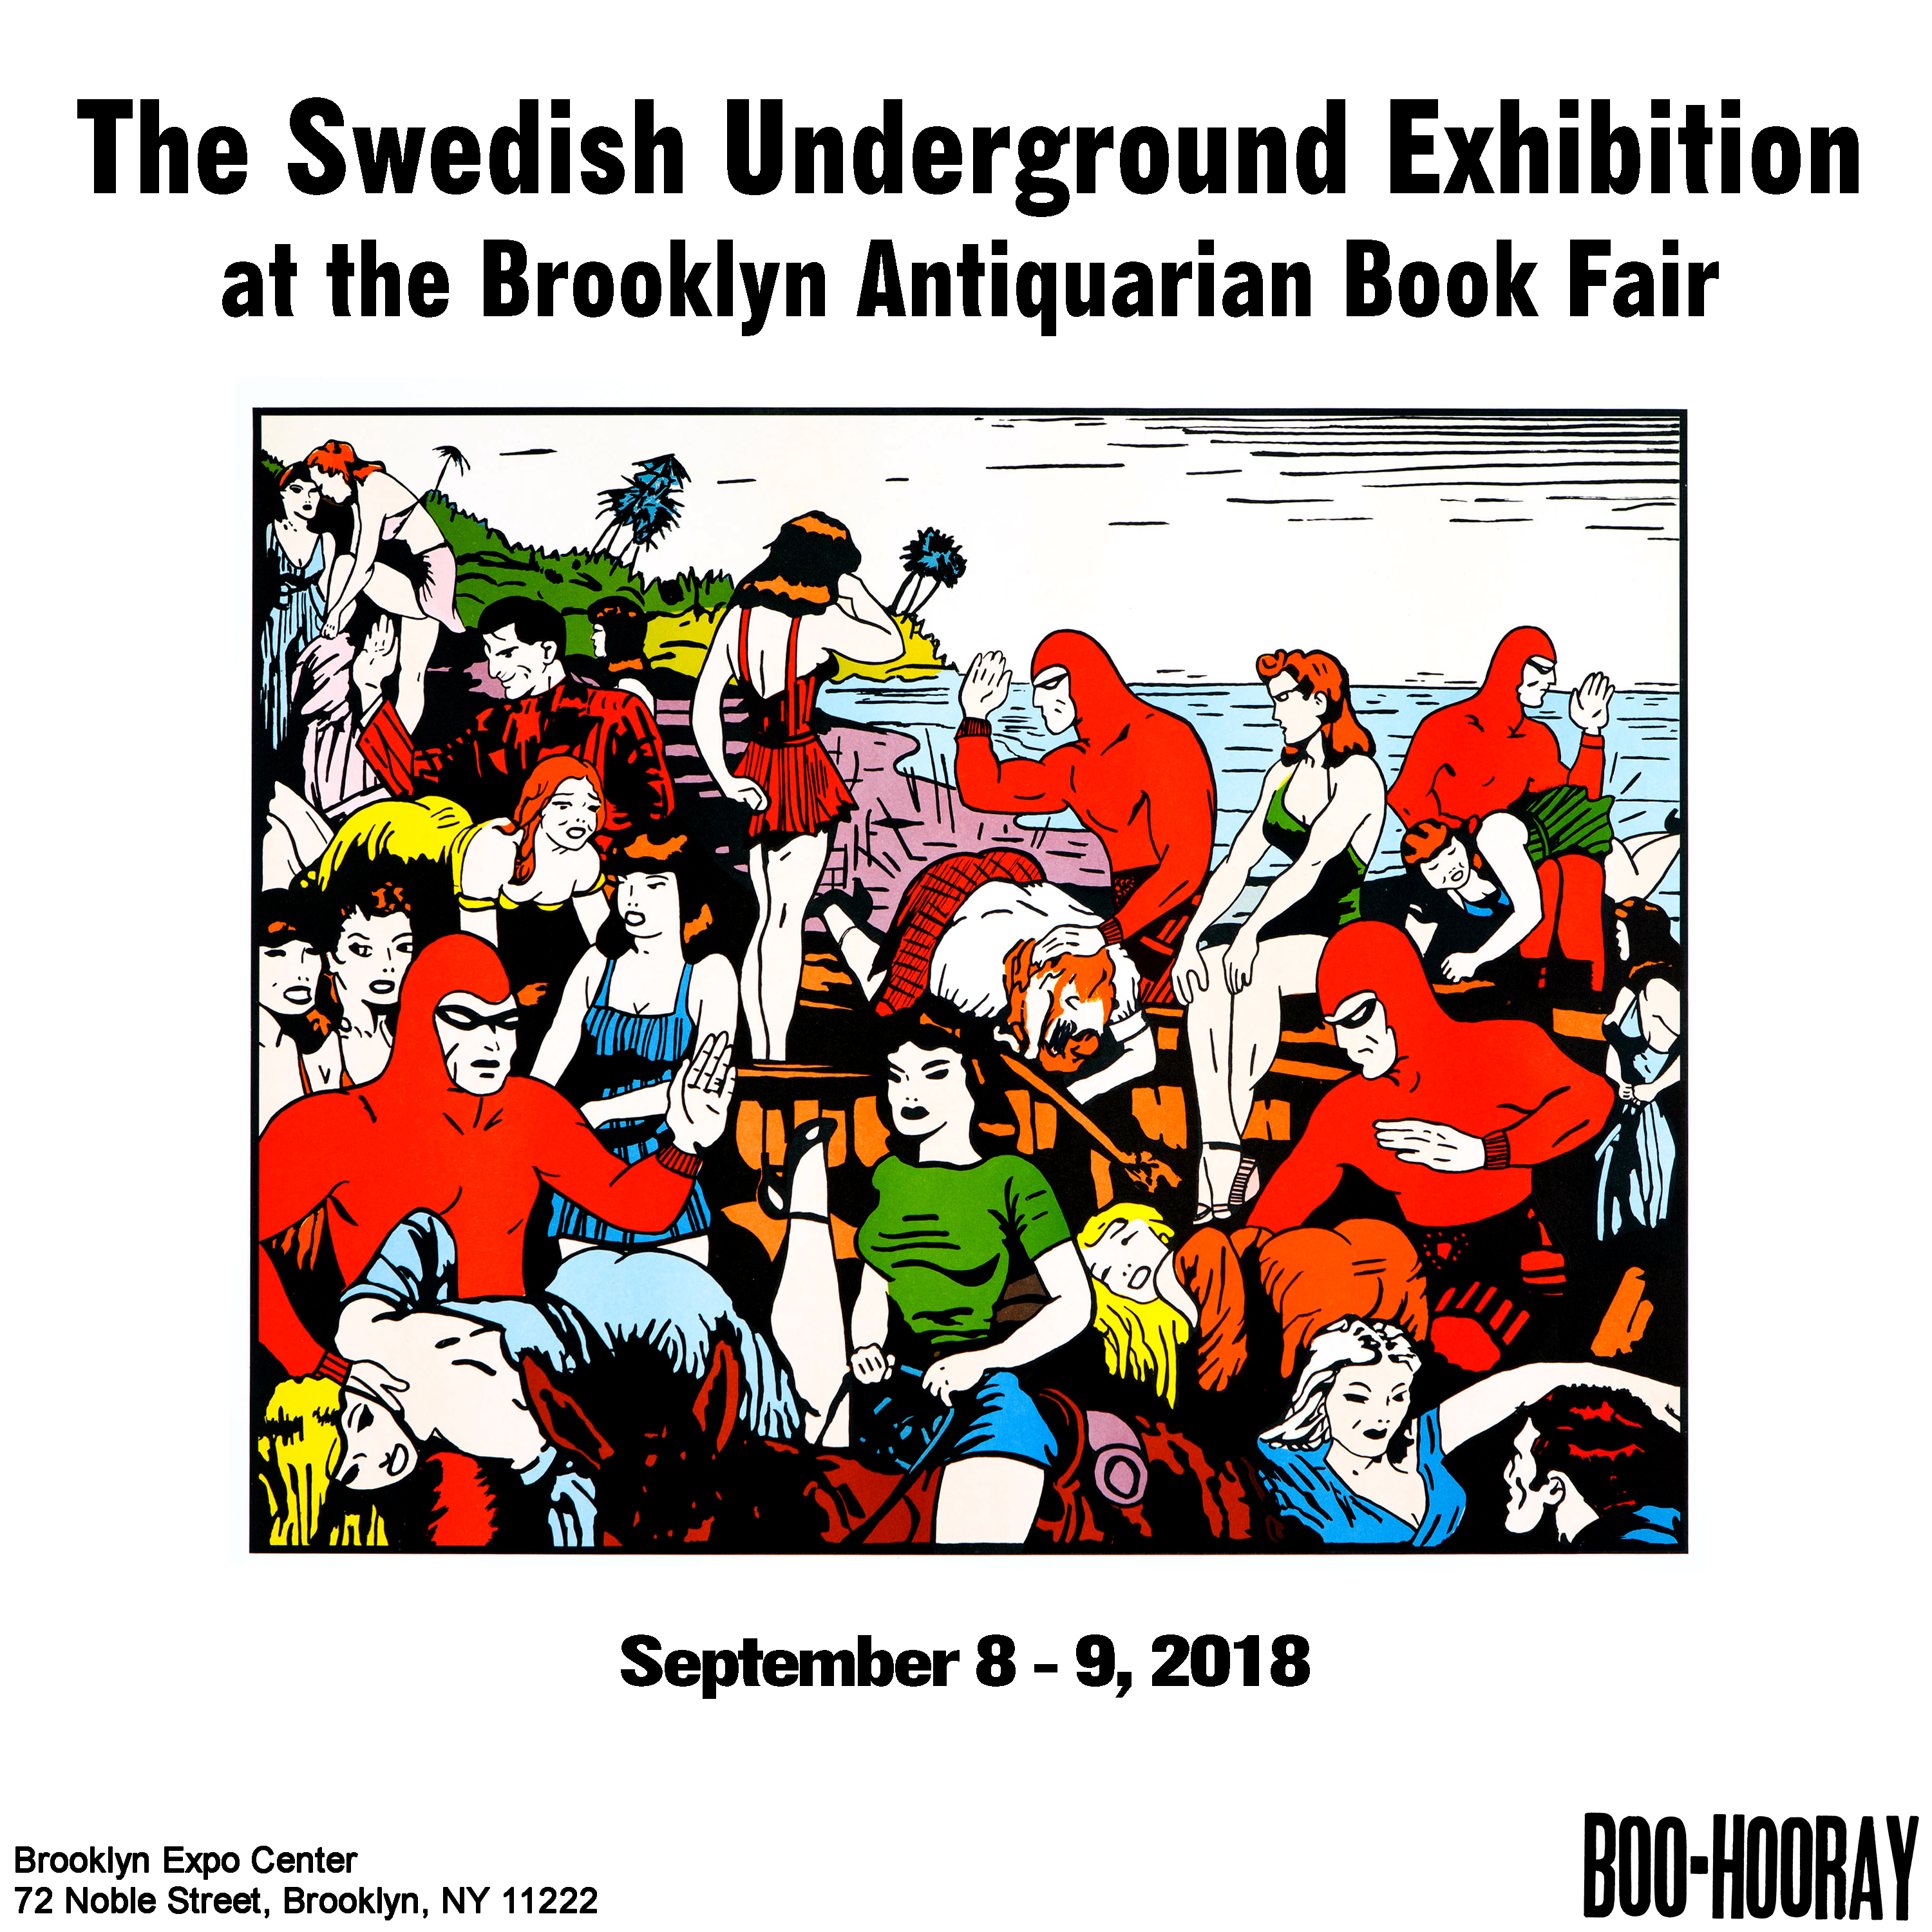 The Swedish Underground Exhibition at the Brooklyn Antiquarian Book Fair